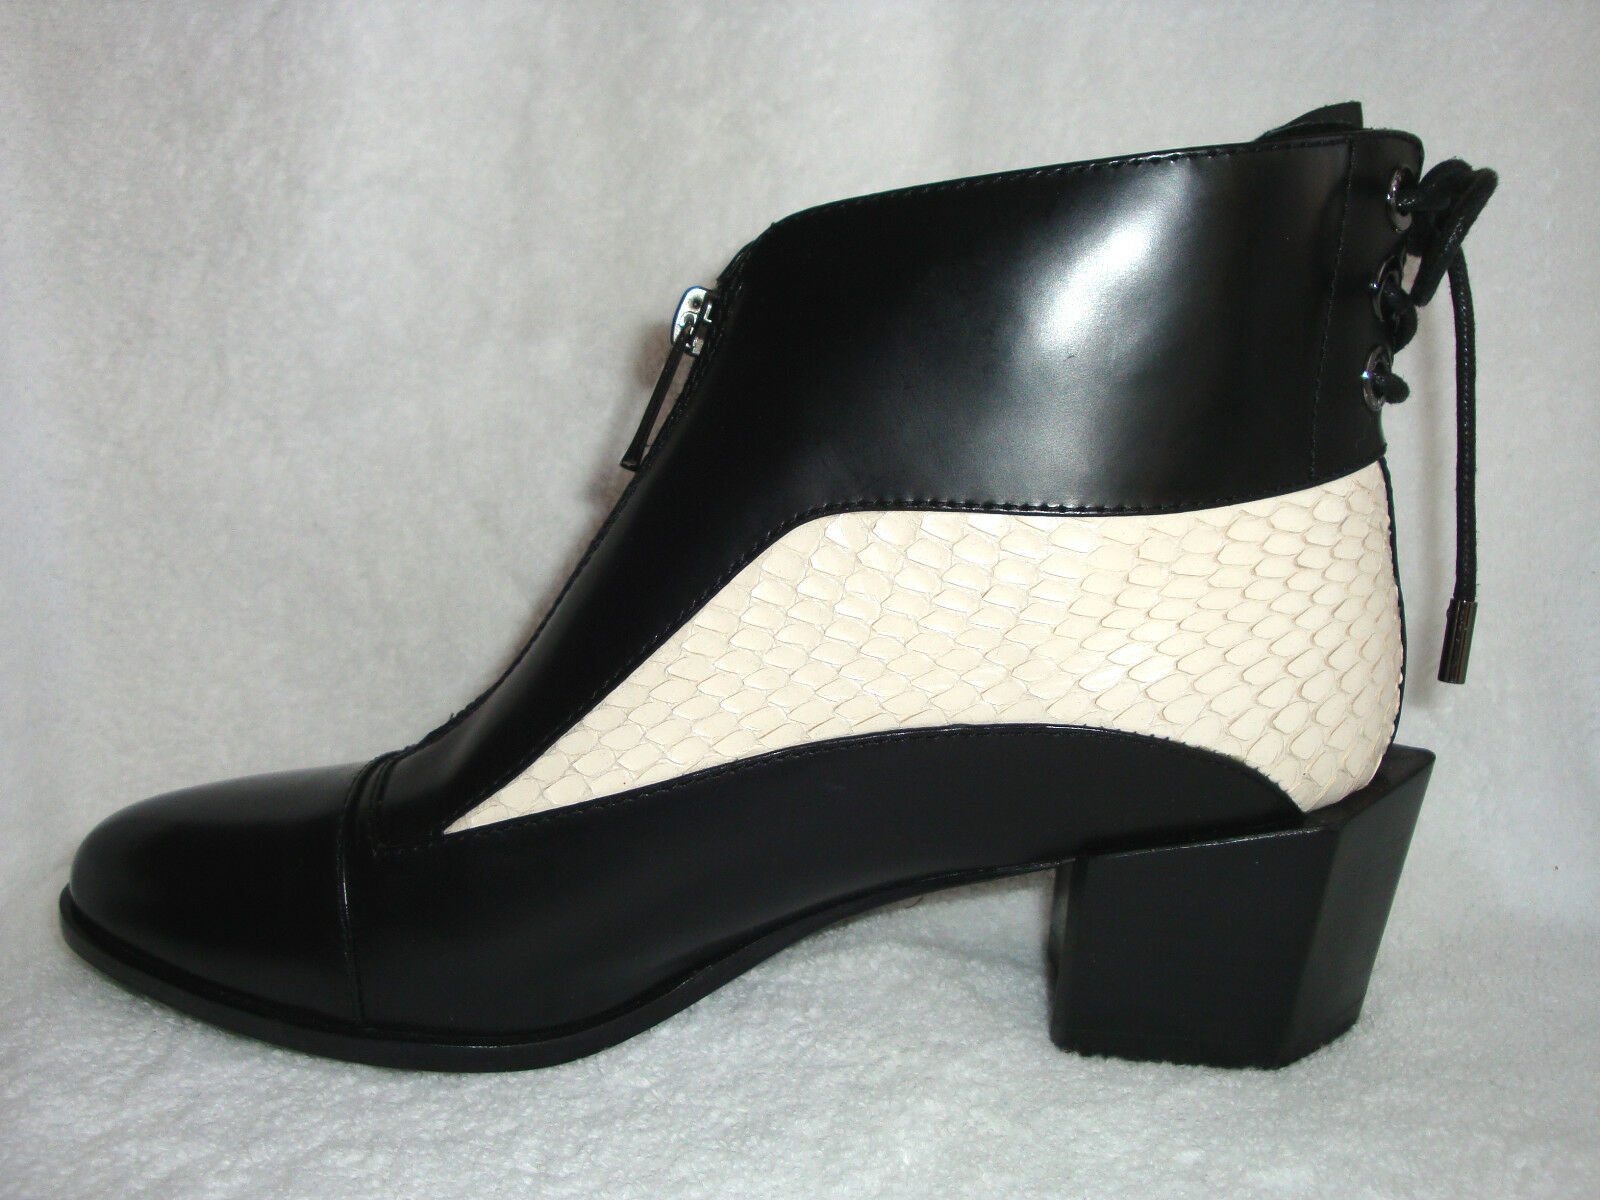 H Williams Black Leather w White Snakeskin Snakeskin Snakeskin Ankle Boots Hexagon Medium Heels 40 M 96080f